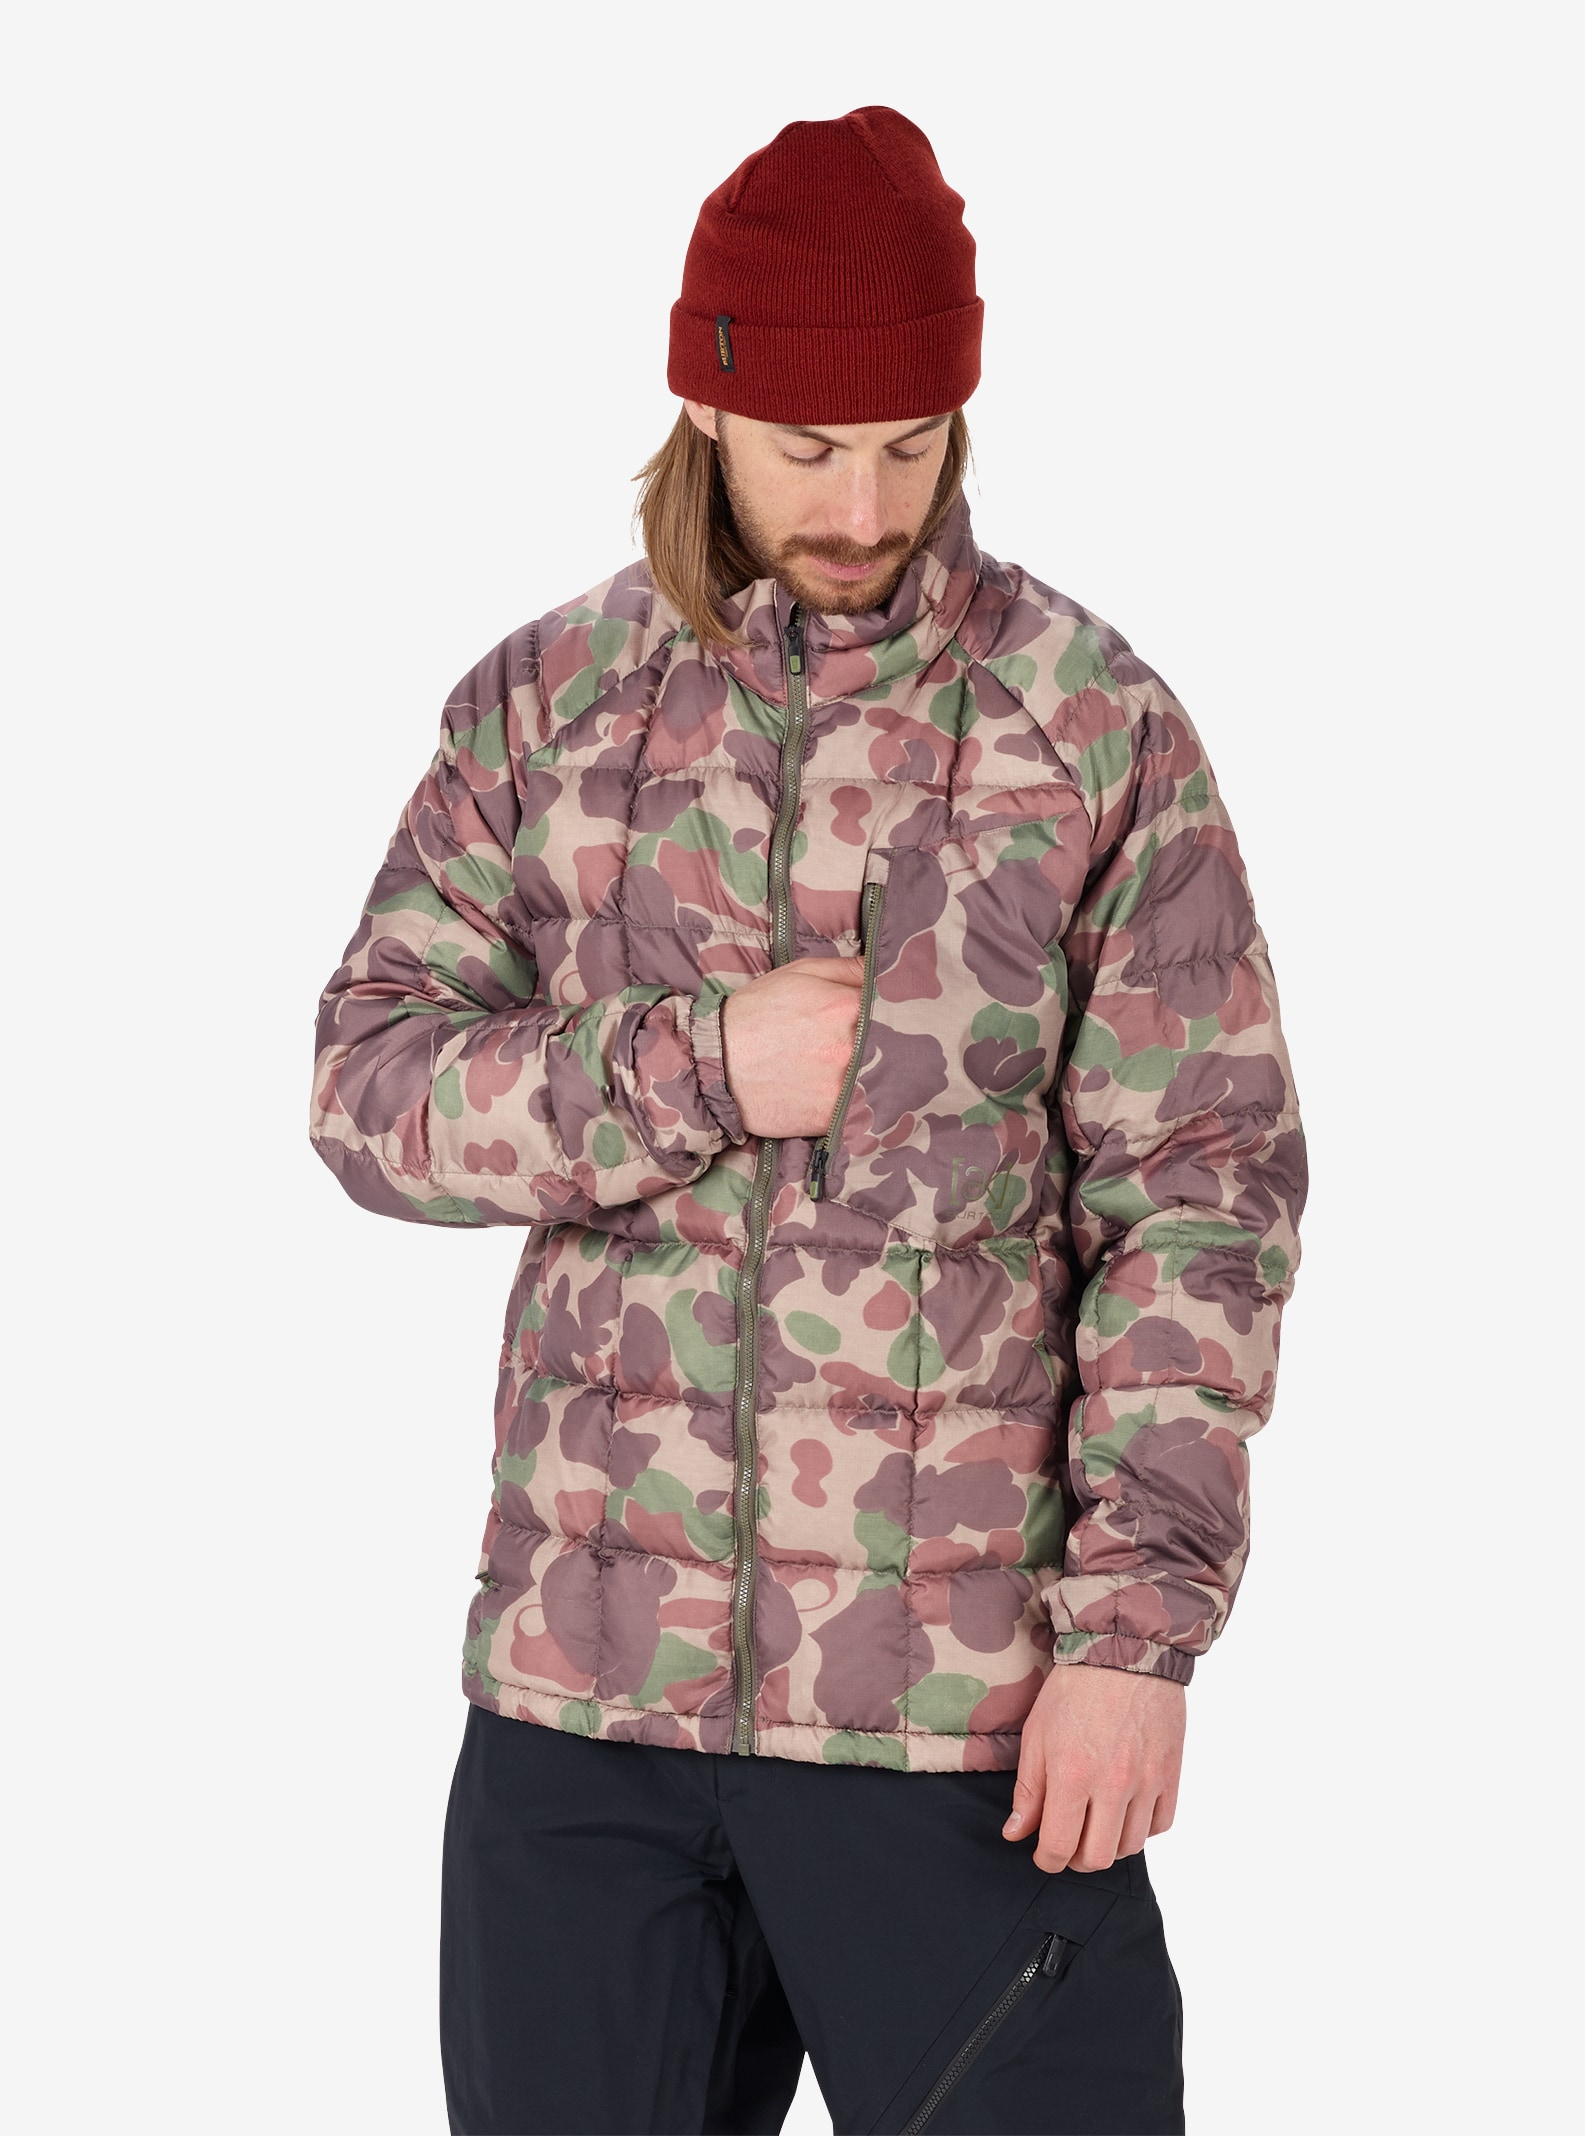 Men's Burton [ak] BK Down Insulator Jacket shown in Kodiak Camo